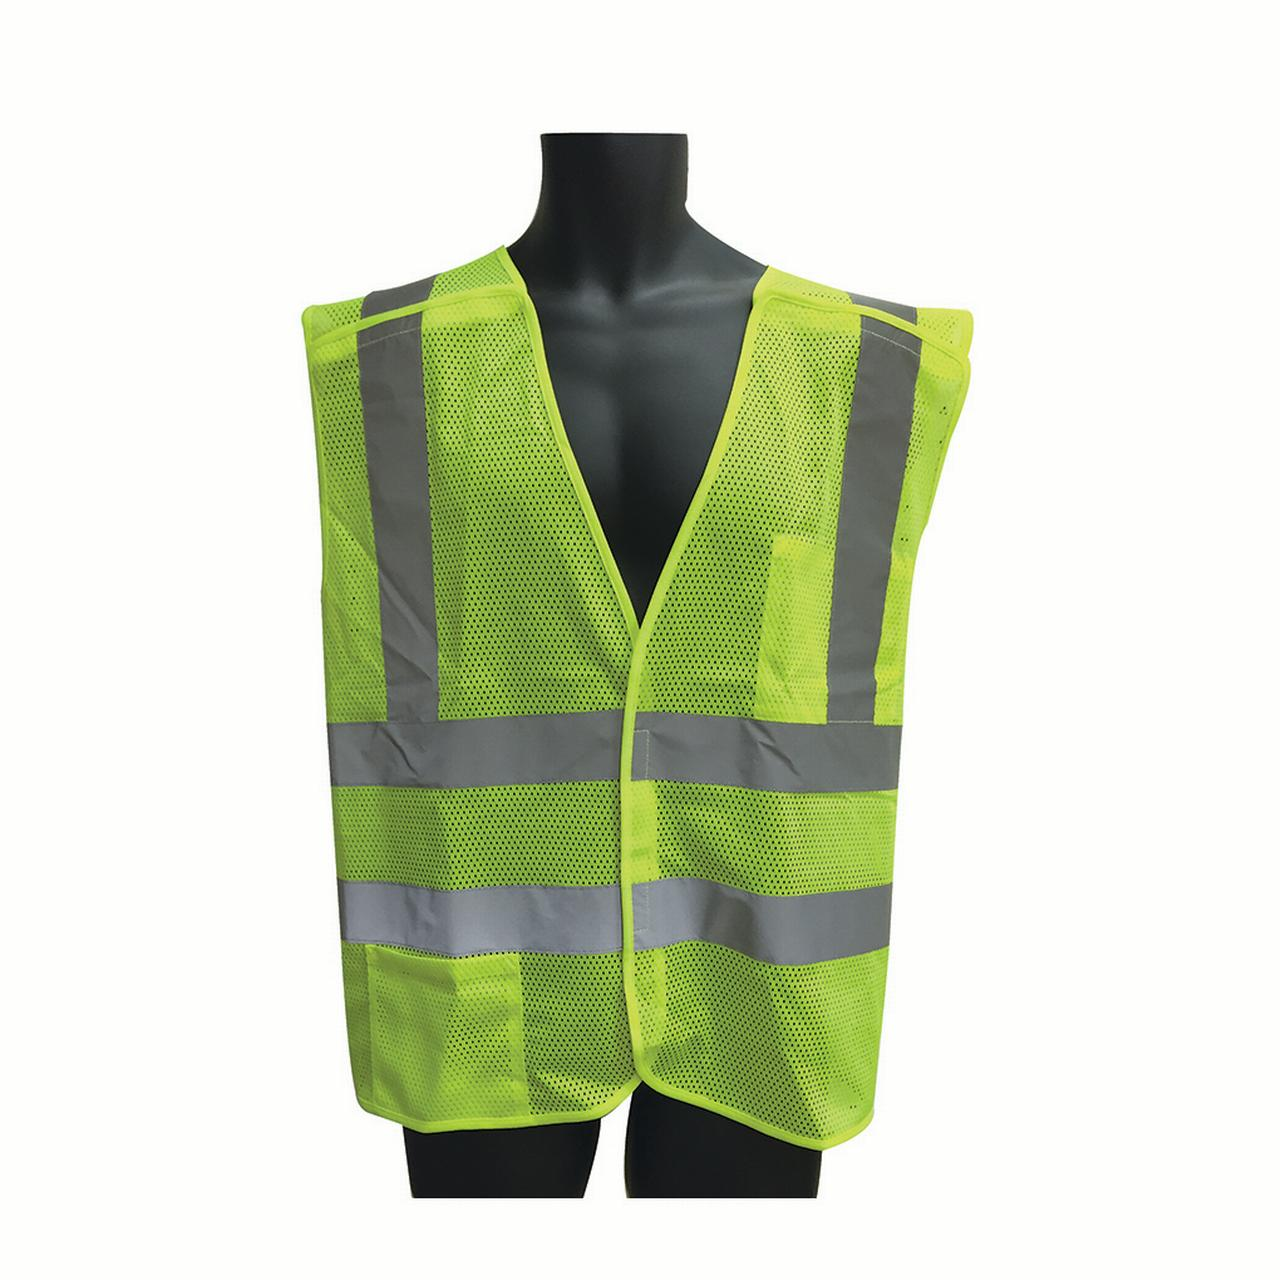 Class II, 5-Point Breakaway Vest Lime Green Mesh Lot of 1 Pack(s) of 1 Unit